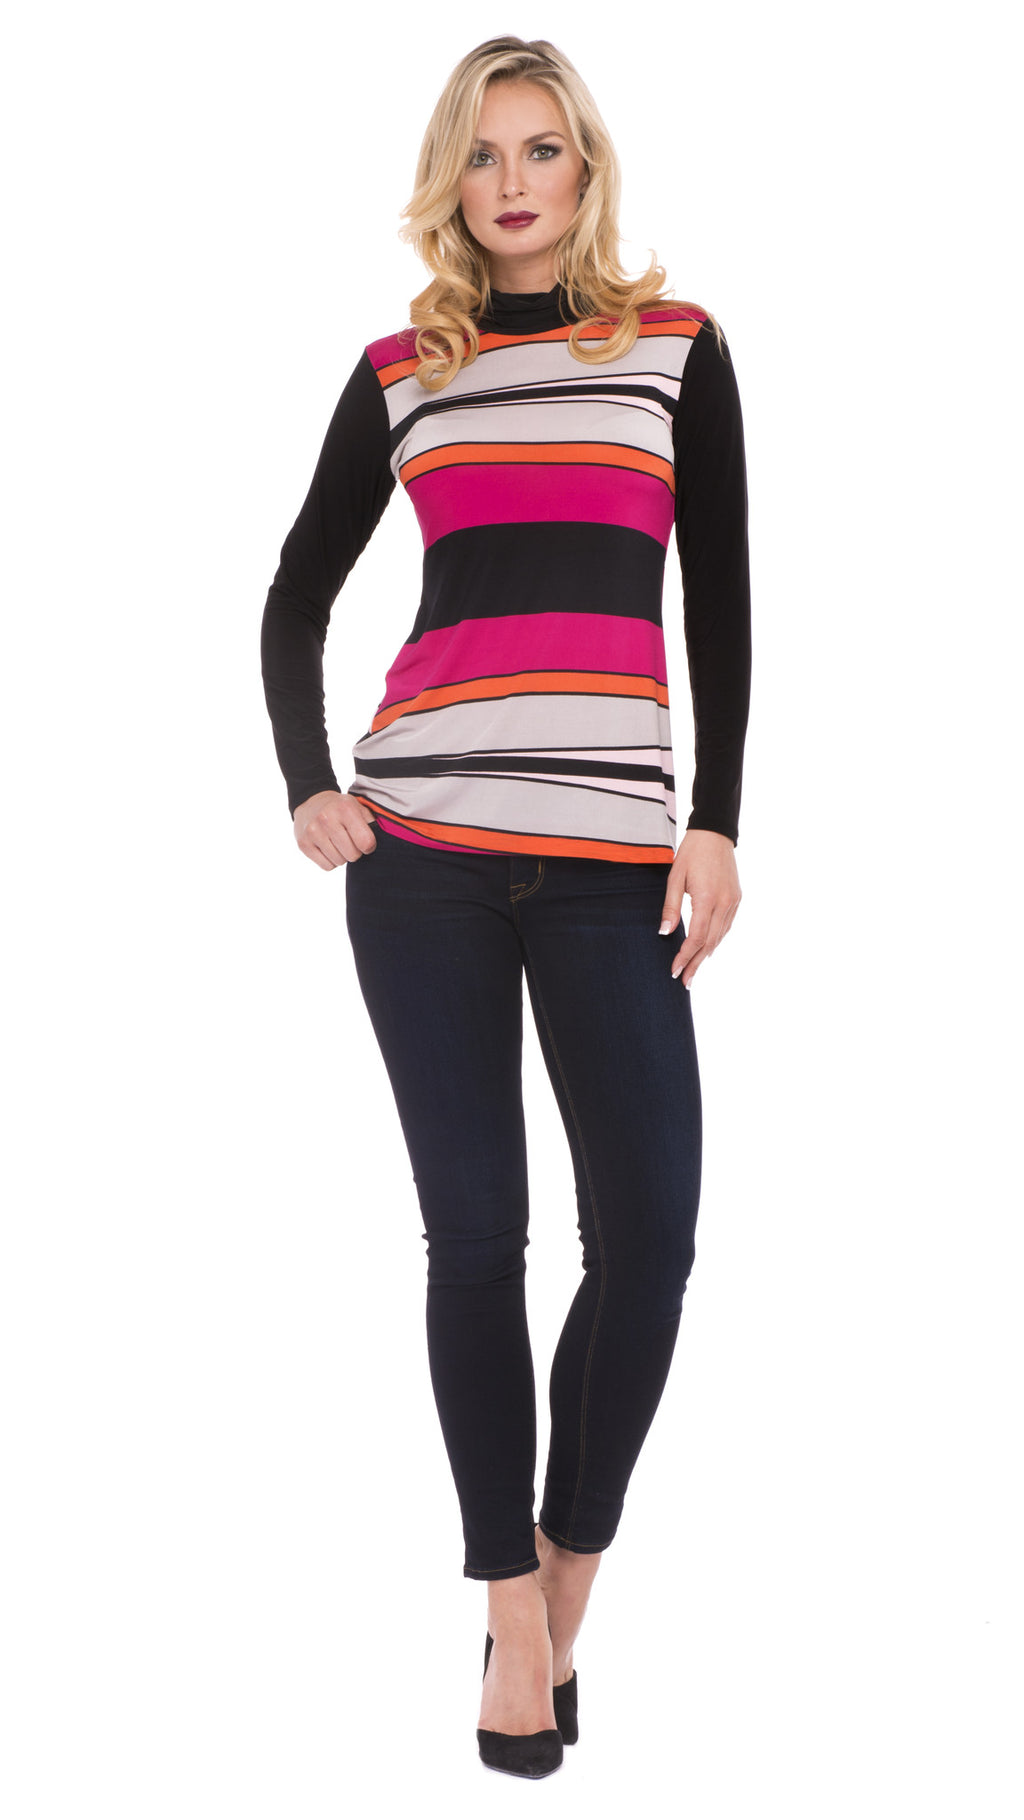 Z Harmony Turtleneck Top